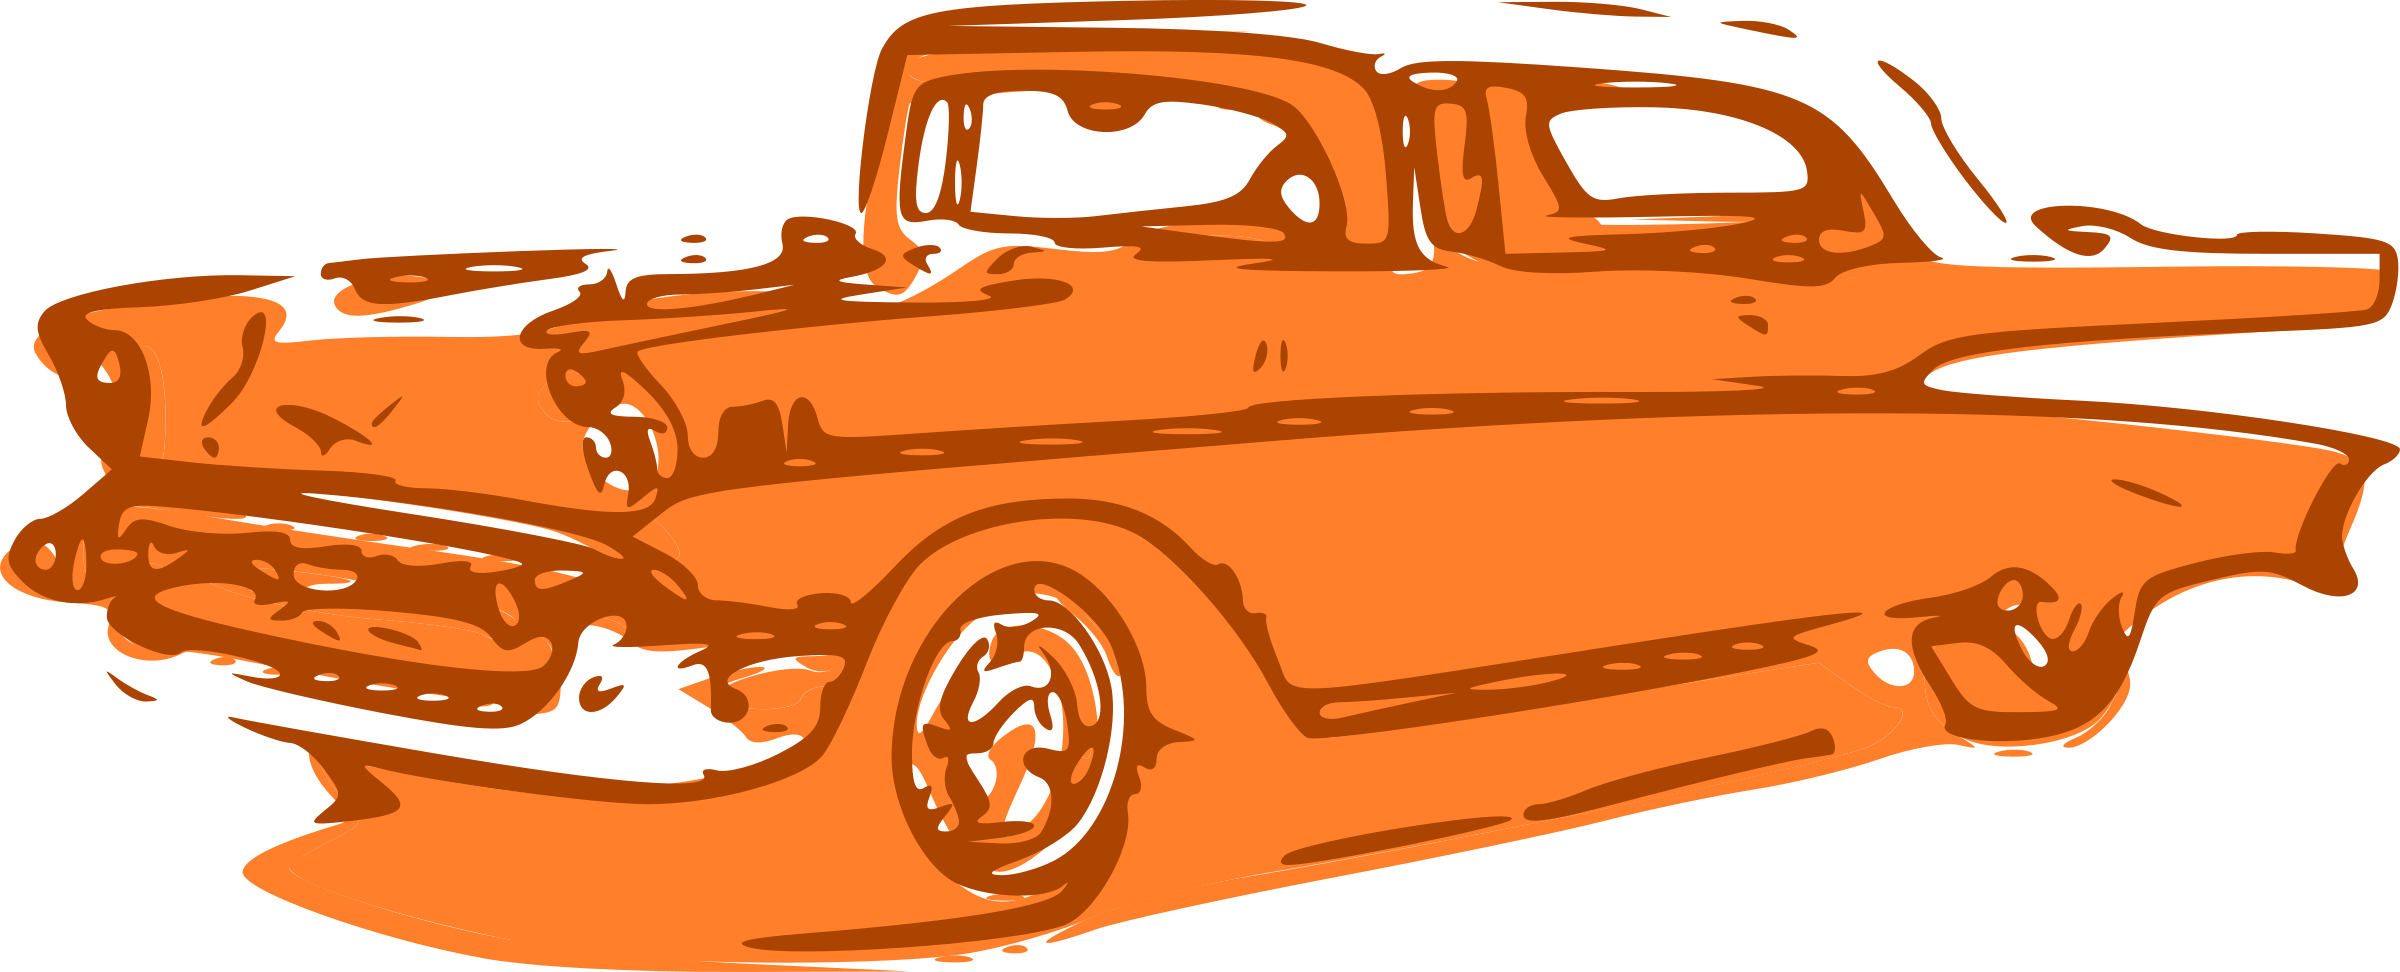 Antique car clipart jpg Clipart - Classic Car jpg